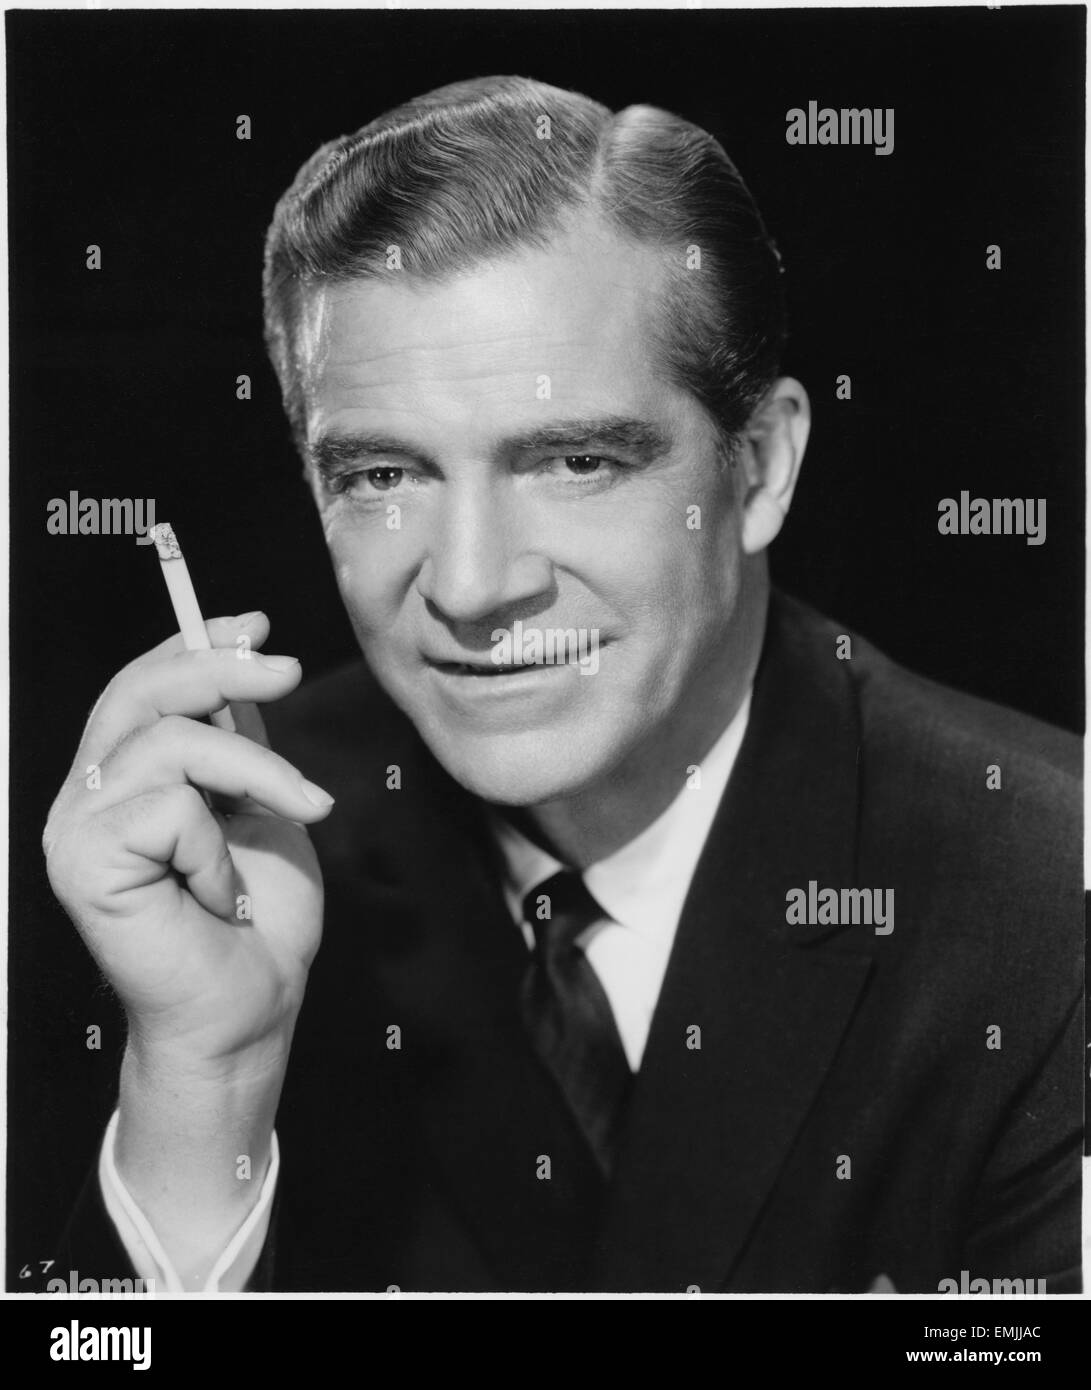 dana andrews janet murray